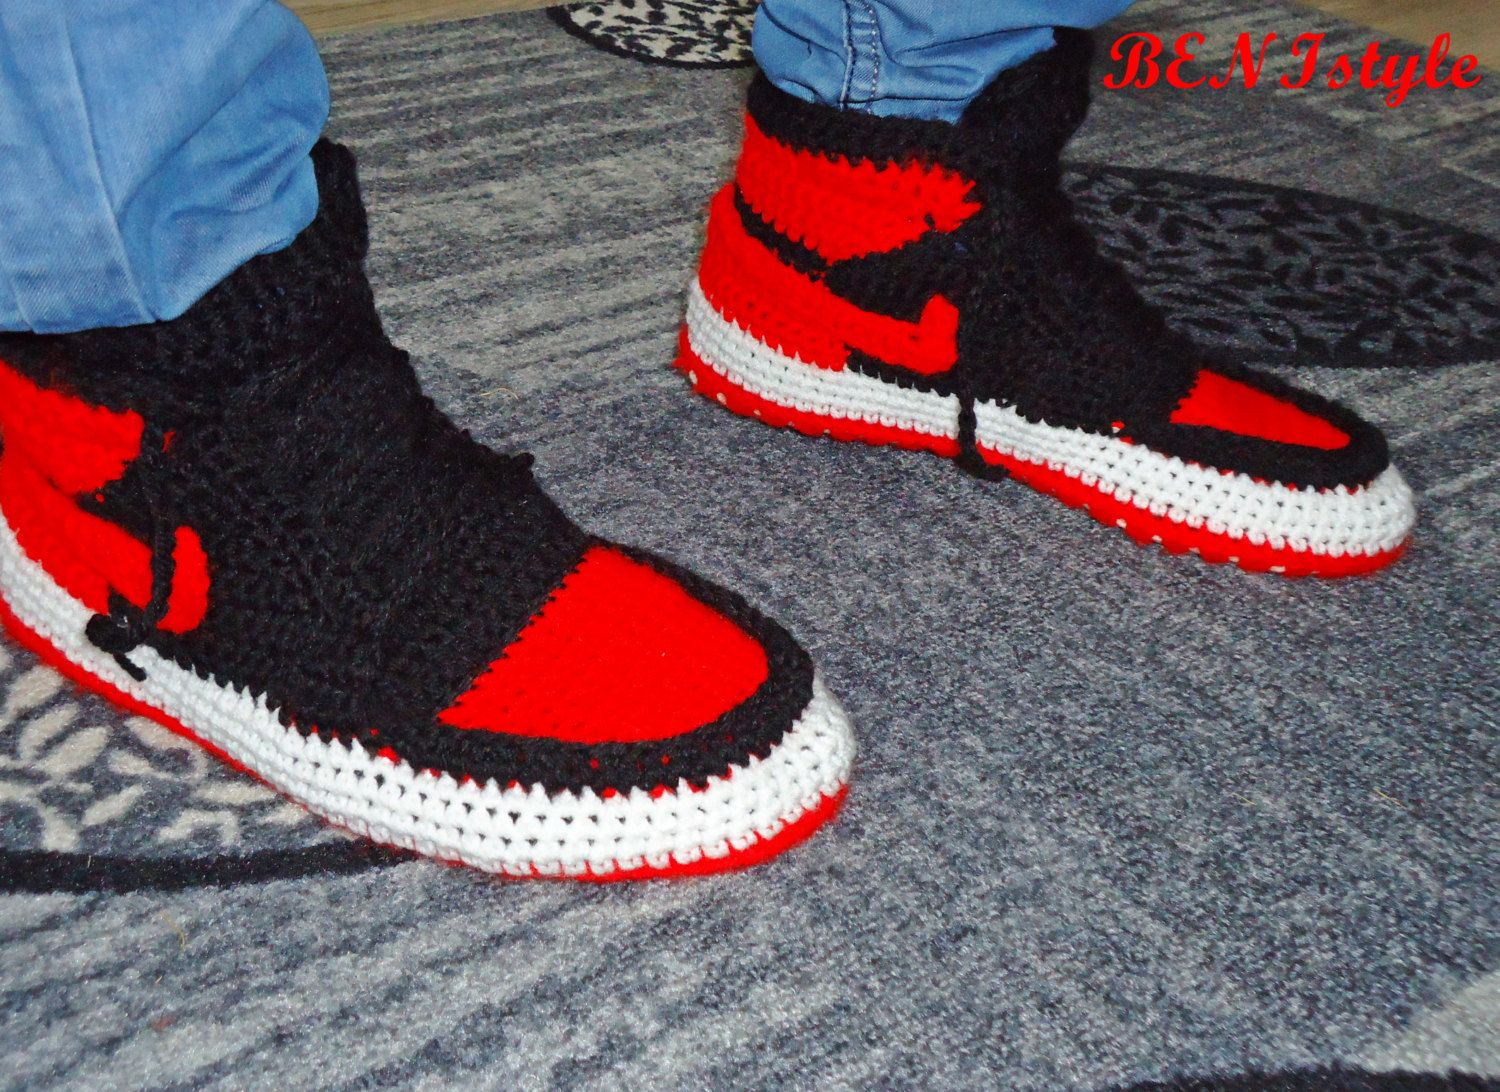 Nike Air Jordan Shoes, Crochet Converse Slippers, Adult Shoes, House  Slippers, Men's Crochet Shoes, Men's Crochet Adult Converse Slippers,